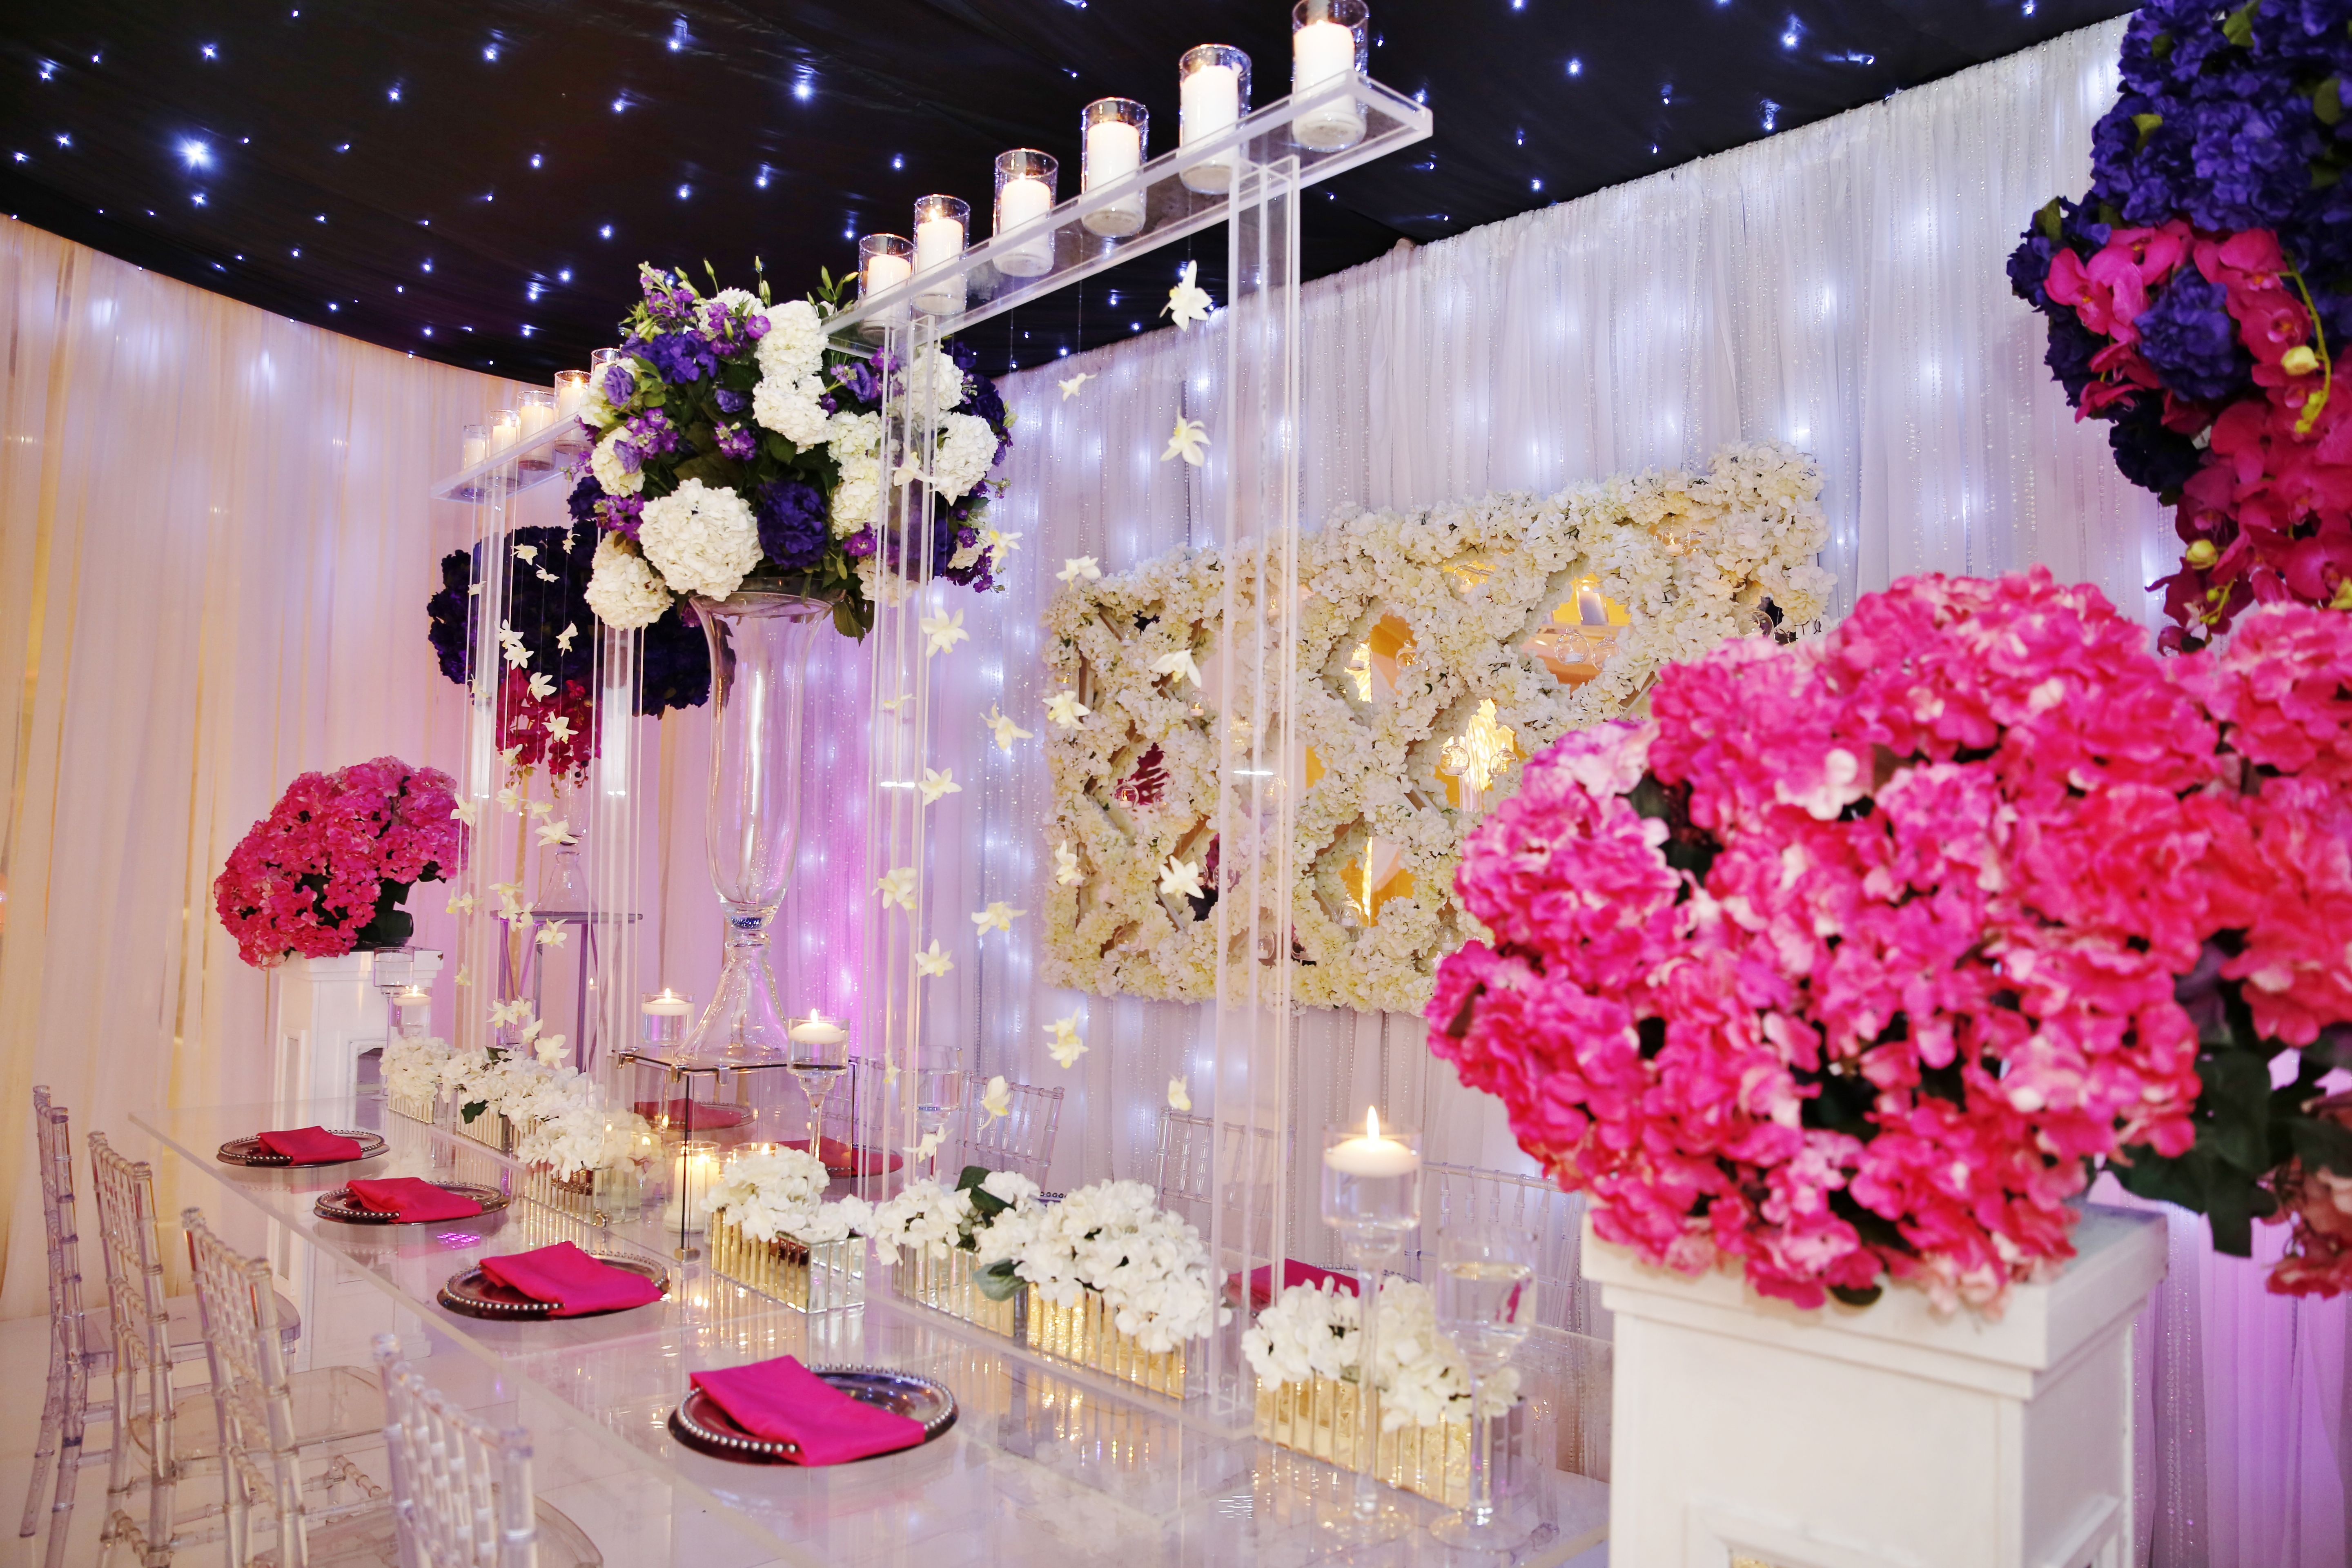 Decor One by Nalini at Crystal Banquet | Events at Crystal ...